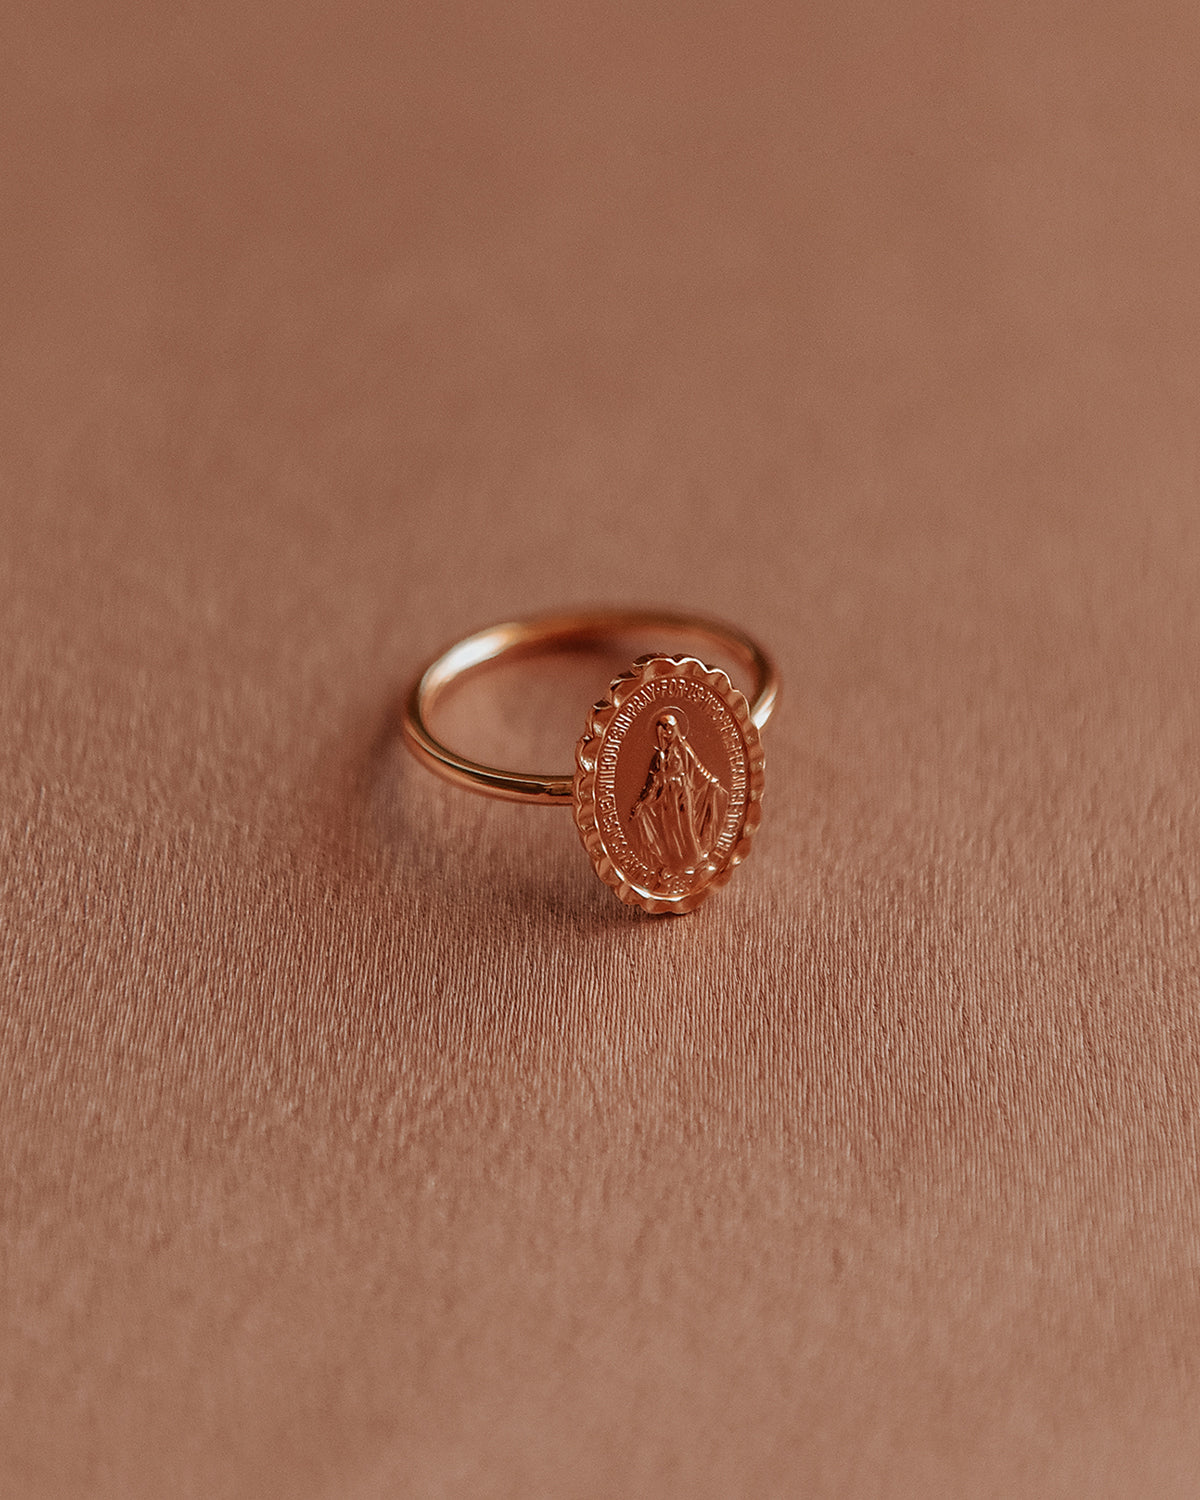 Image of Honor Miraculous Medal Ring